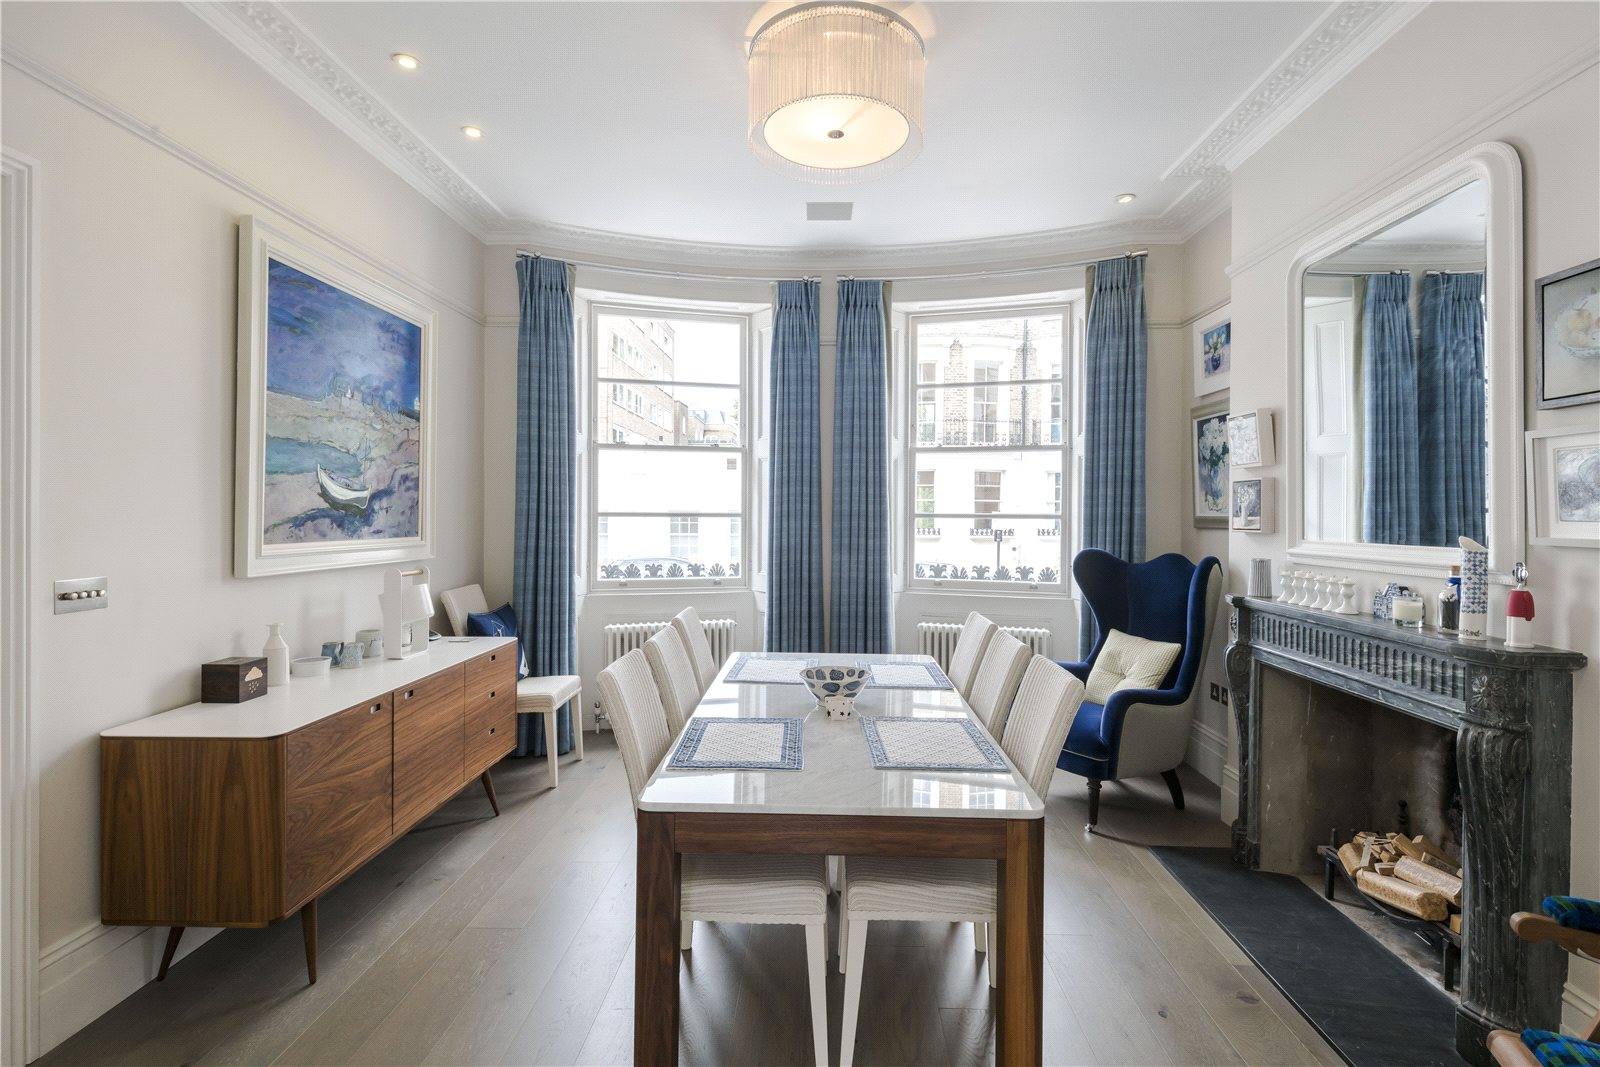 Needham Road, Notting Hill, London, W11: a luxury home for sale in ...